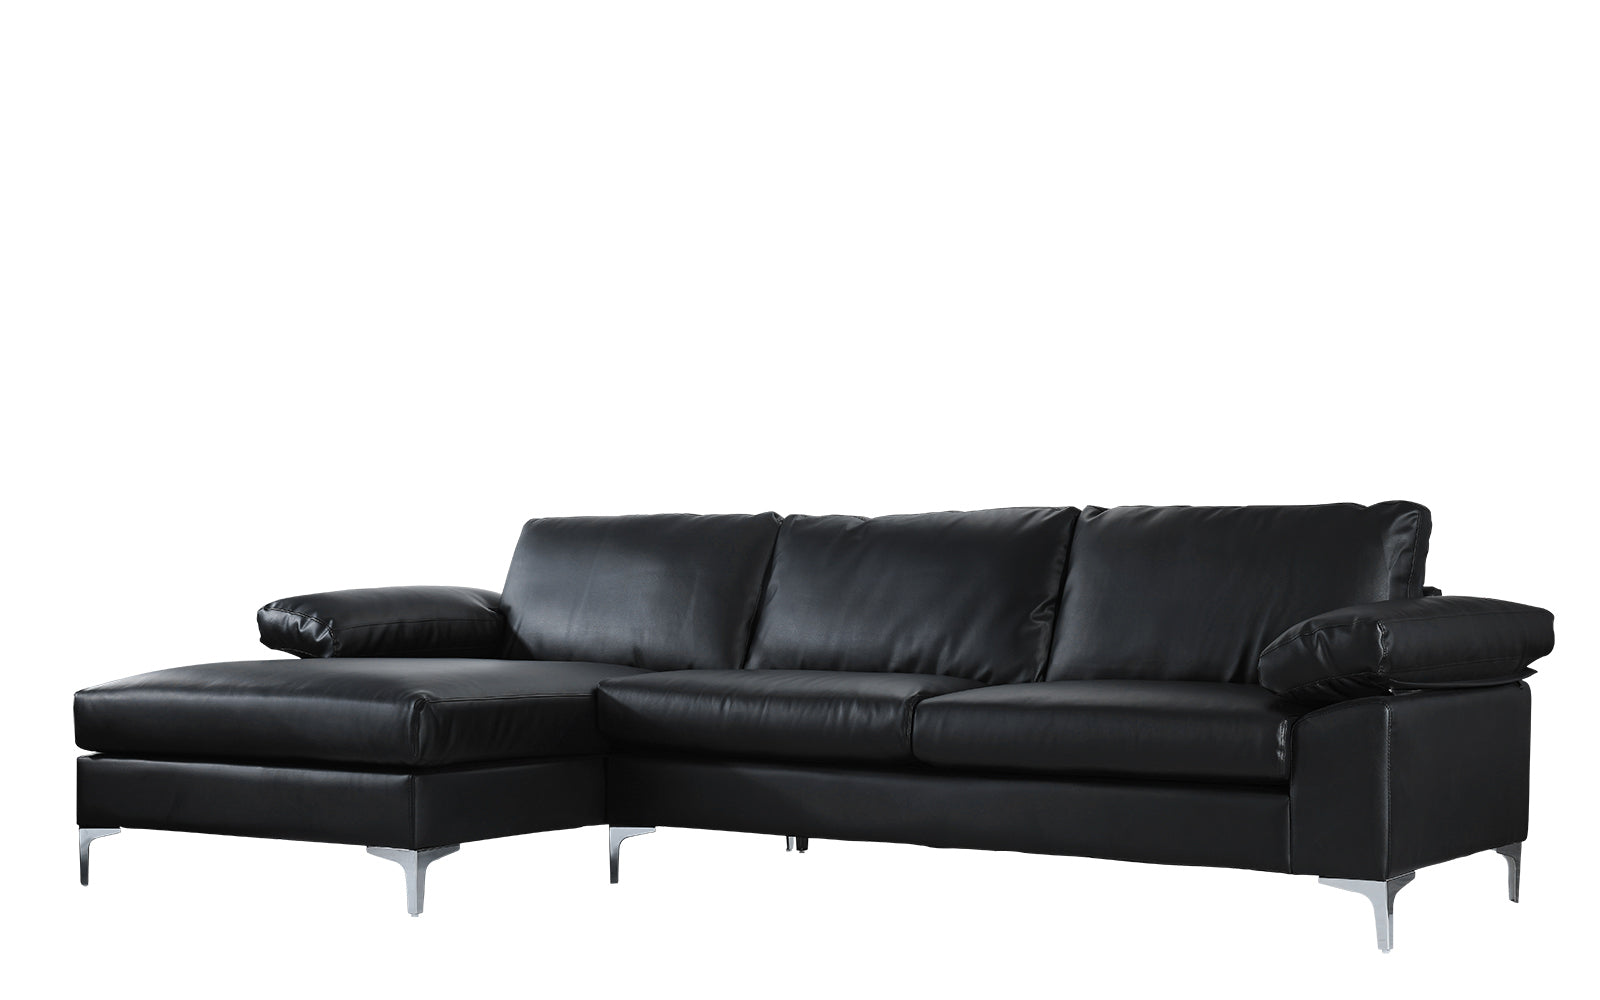 Astonishing Amanda Modern Faux Leather Large Sectional Sofa Sofamania Com Unemploymentrelief Wooden Chair Designs For Living Room Unemploymentrelieforg